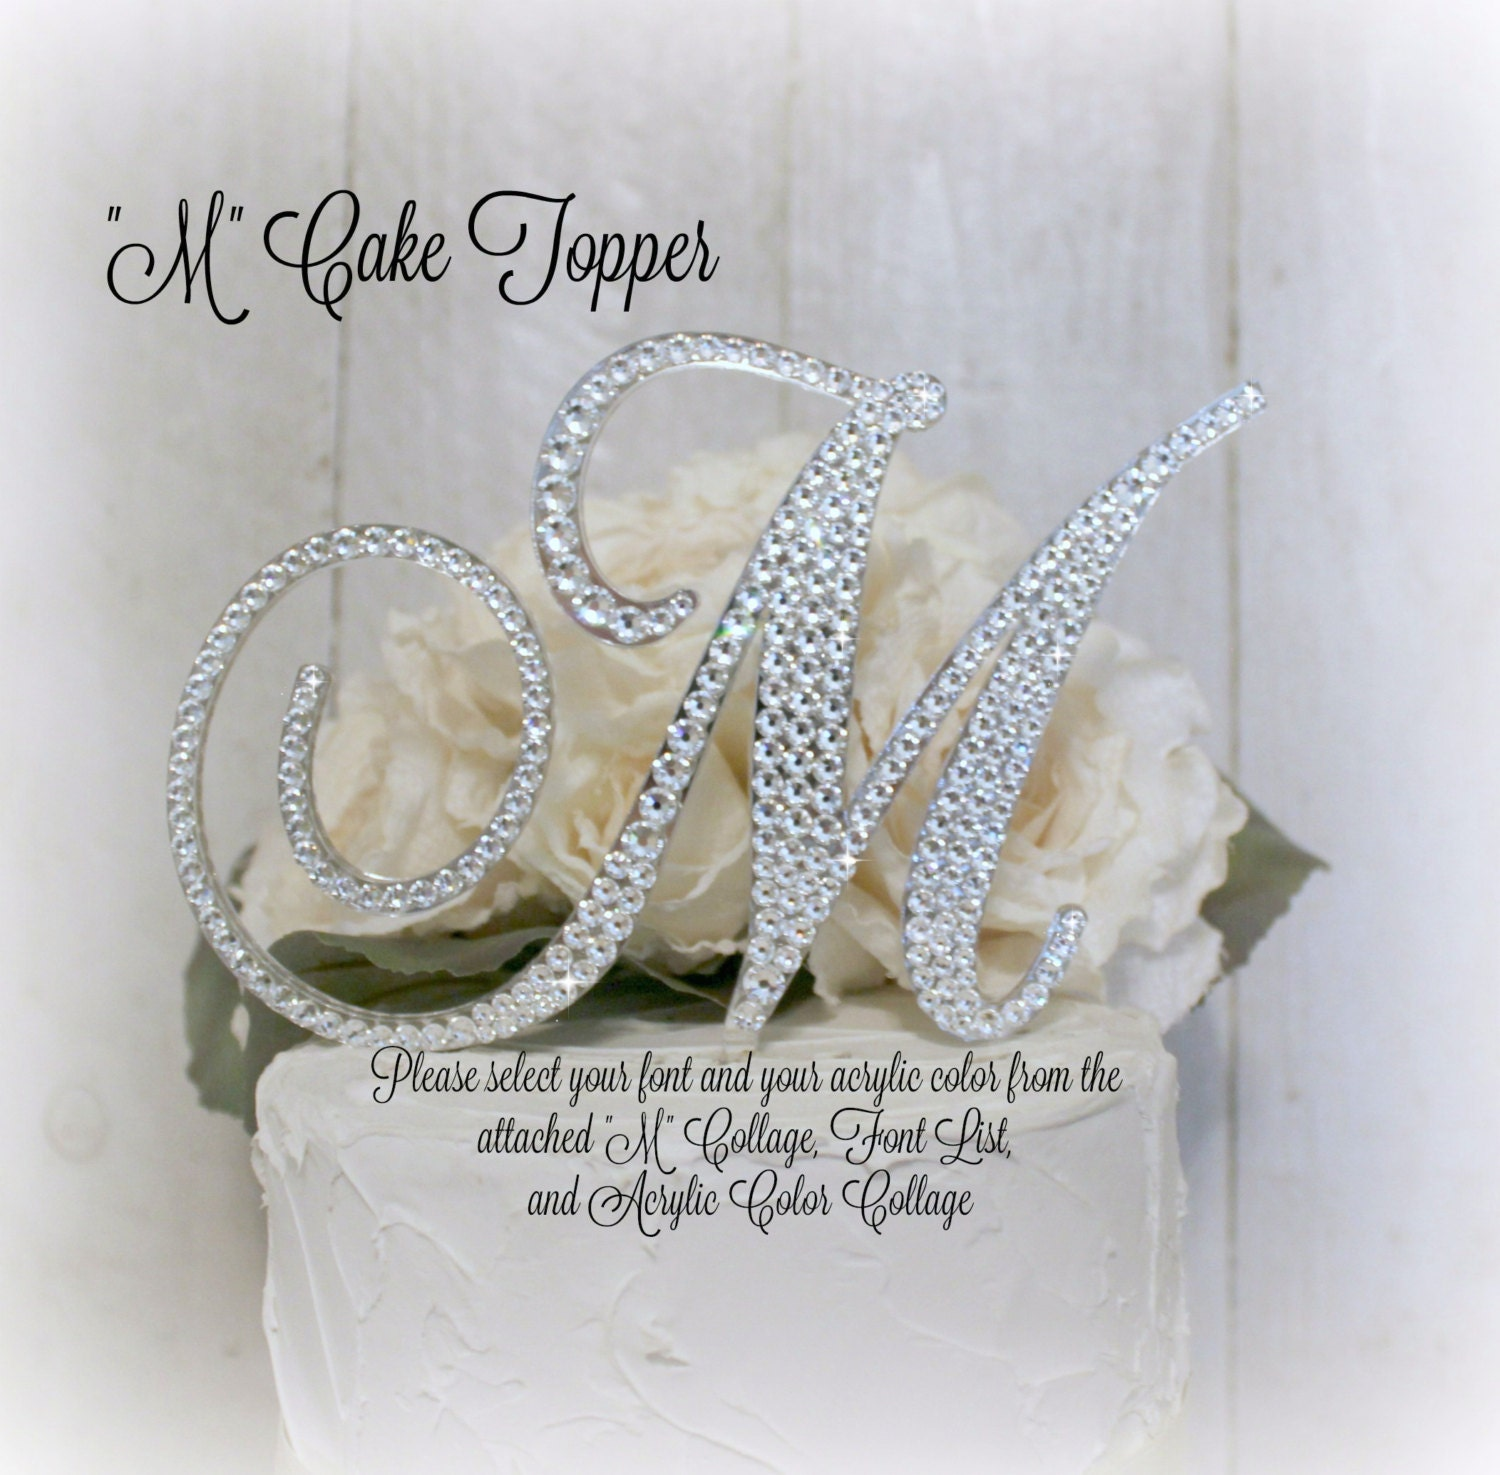 Wedding Cake Toppers Letter M : Wedding Cake Topper Letter M Initial Cake Toppers M Monogram